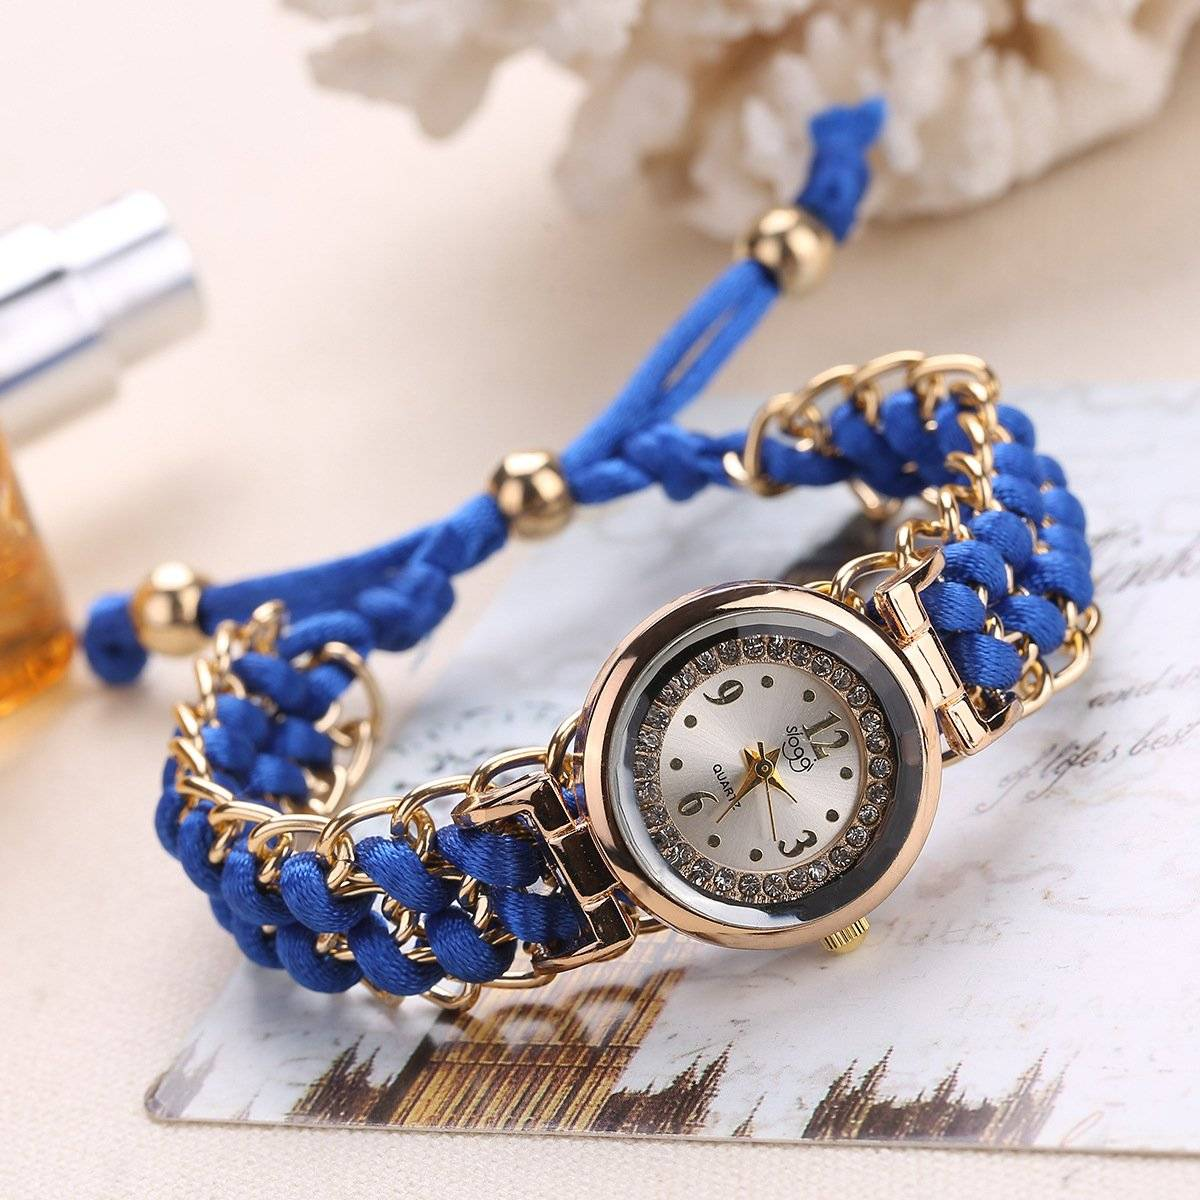 Blue Luxury Stylish Girls Analog Handmade Braided Bracelet Watch Thread Knitted Weaved Strap Women Dress Casual Watches Relogio Feminino Female Ladies Wrist Watch Best For Personal Use Or Gift Birthday Party